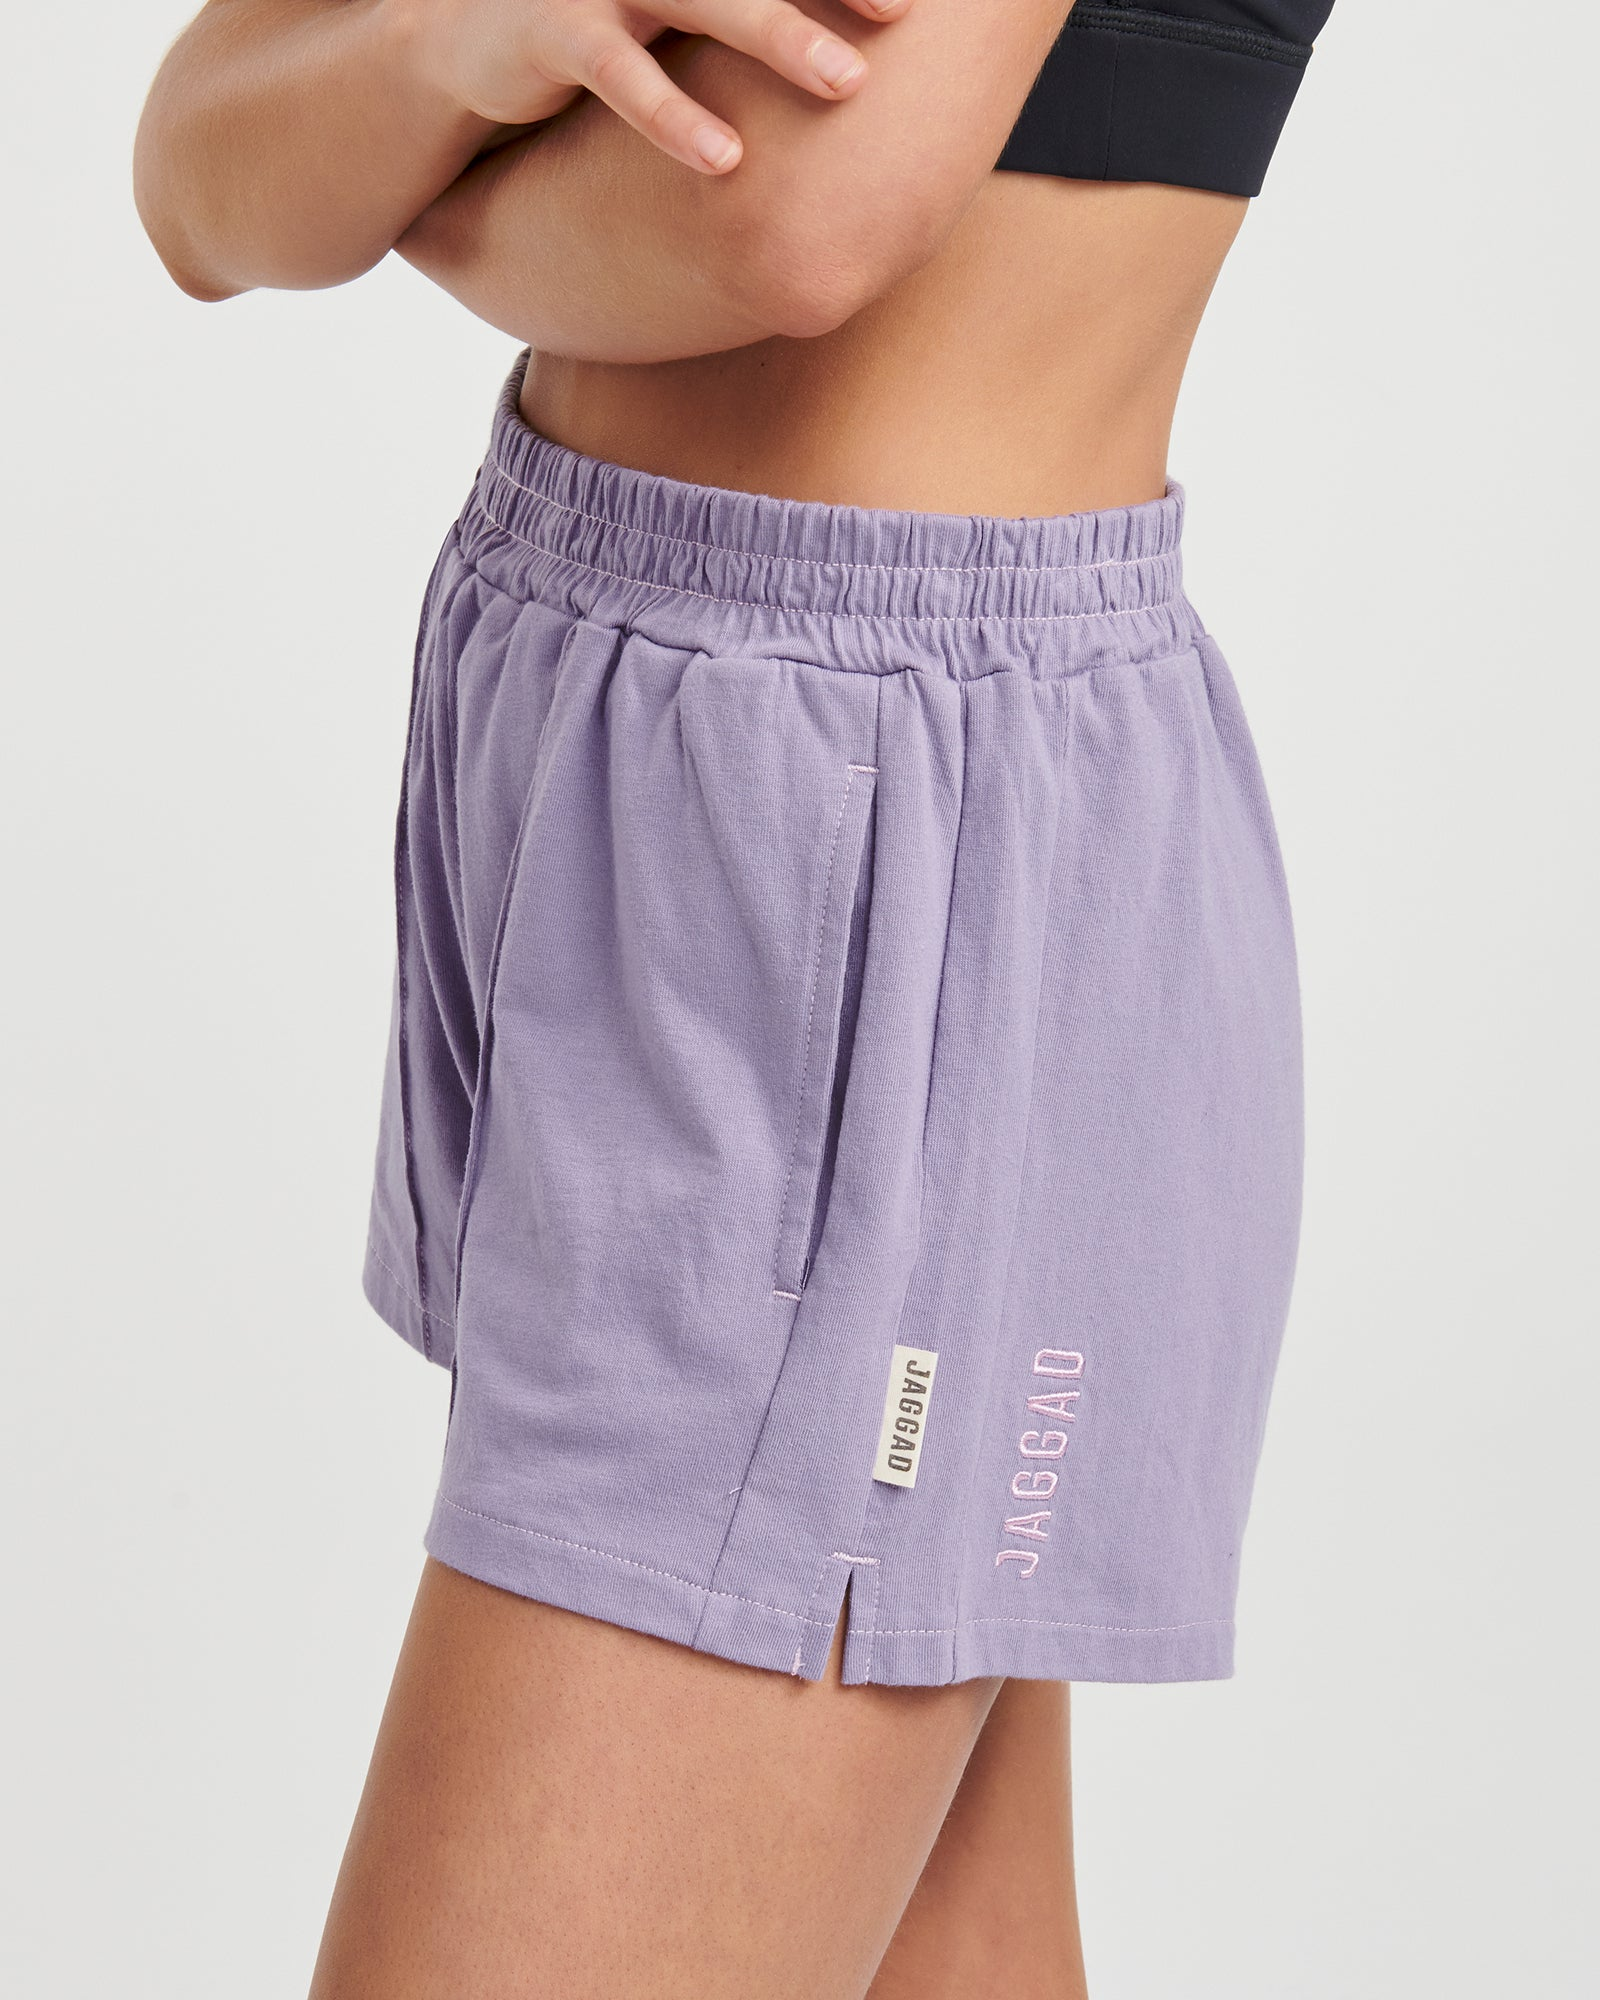 Reflect Organic Cotton Short Lavender